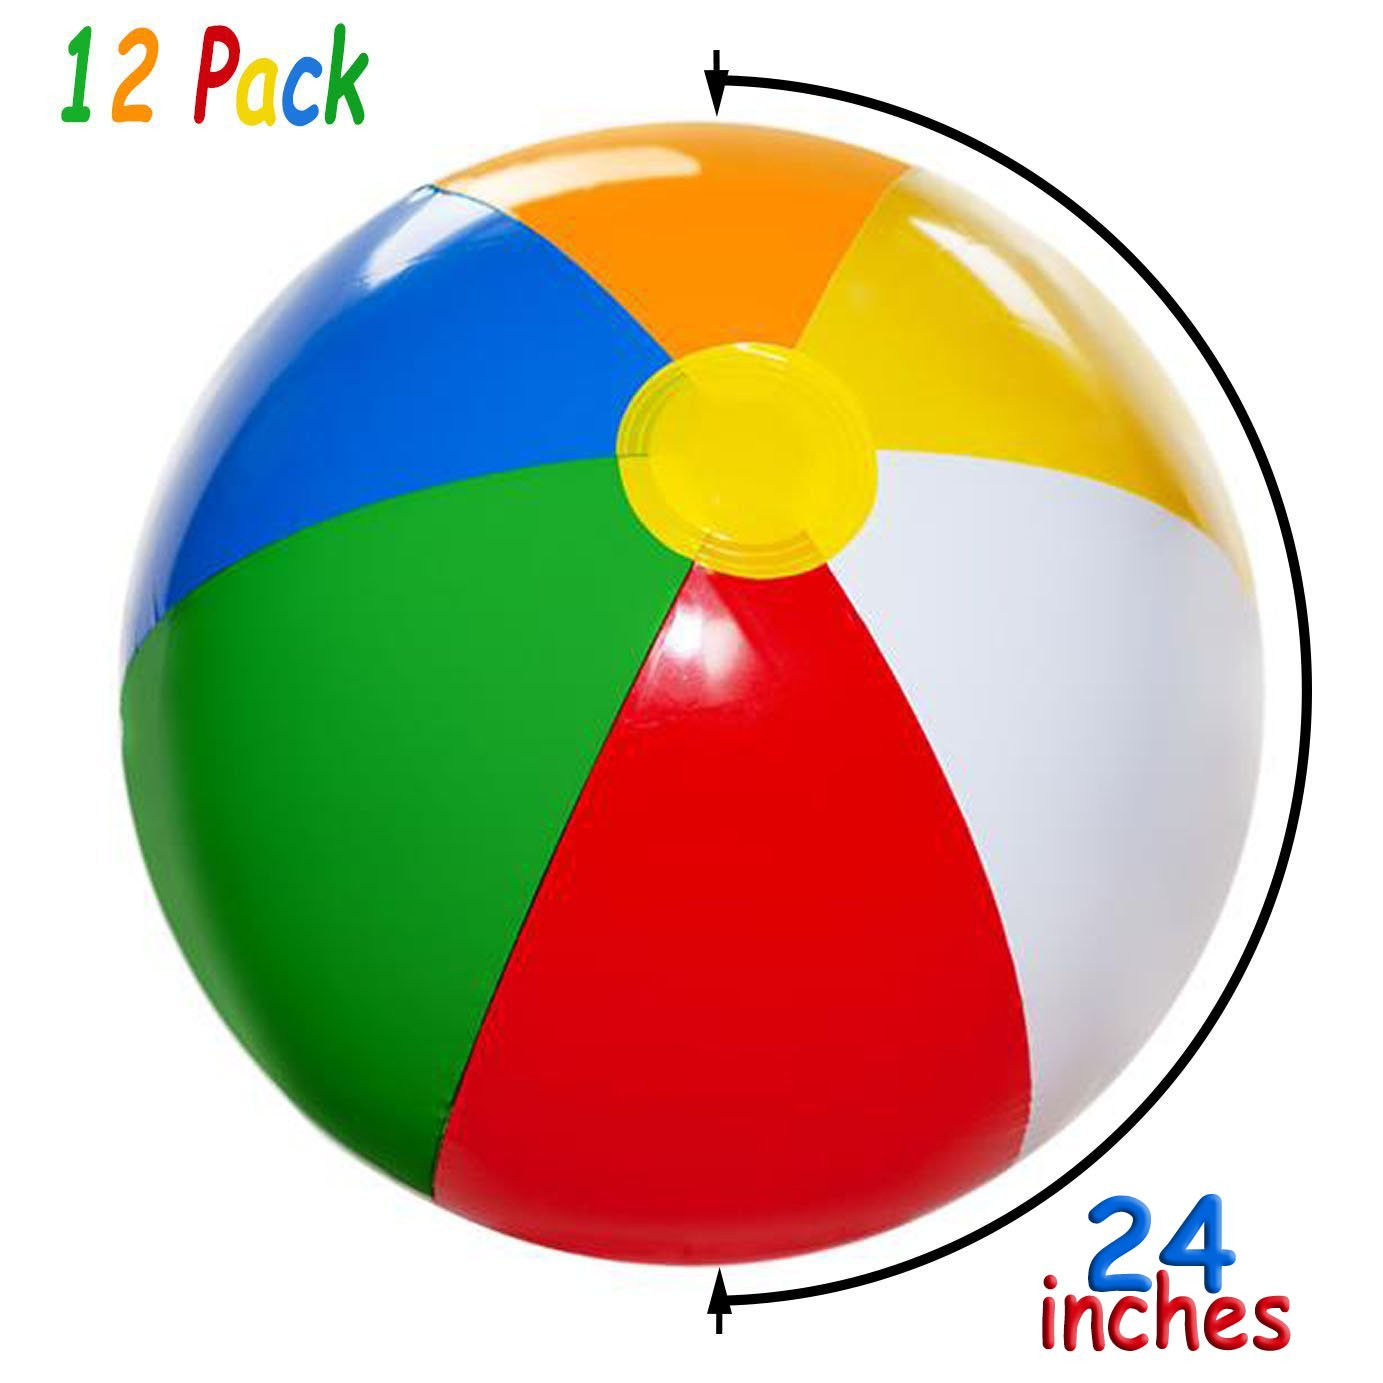 Bulk Large 24-inch Inflatable Beach Balls Pack of 12 Summer Beach & Pool Party Supplies, Beach Ball for Kids Toddlers Boys Girls, 4E's Novelty